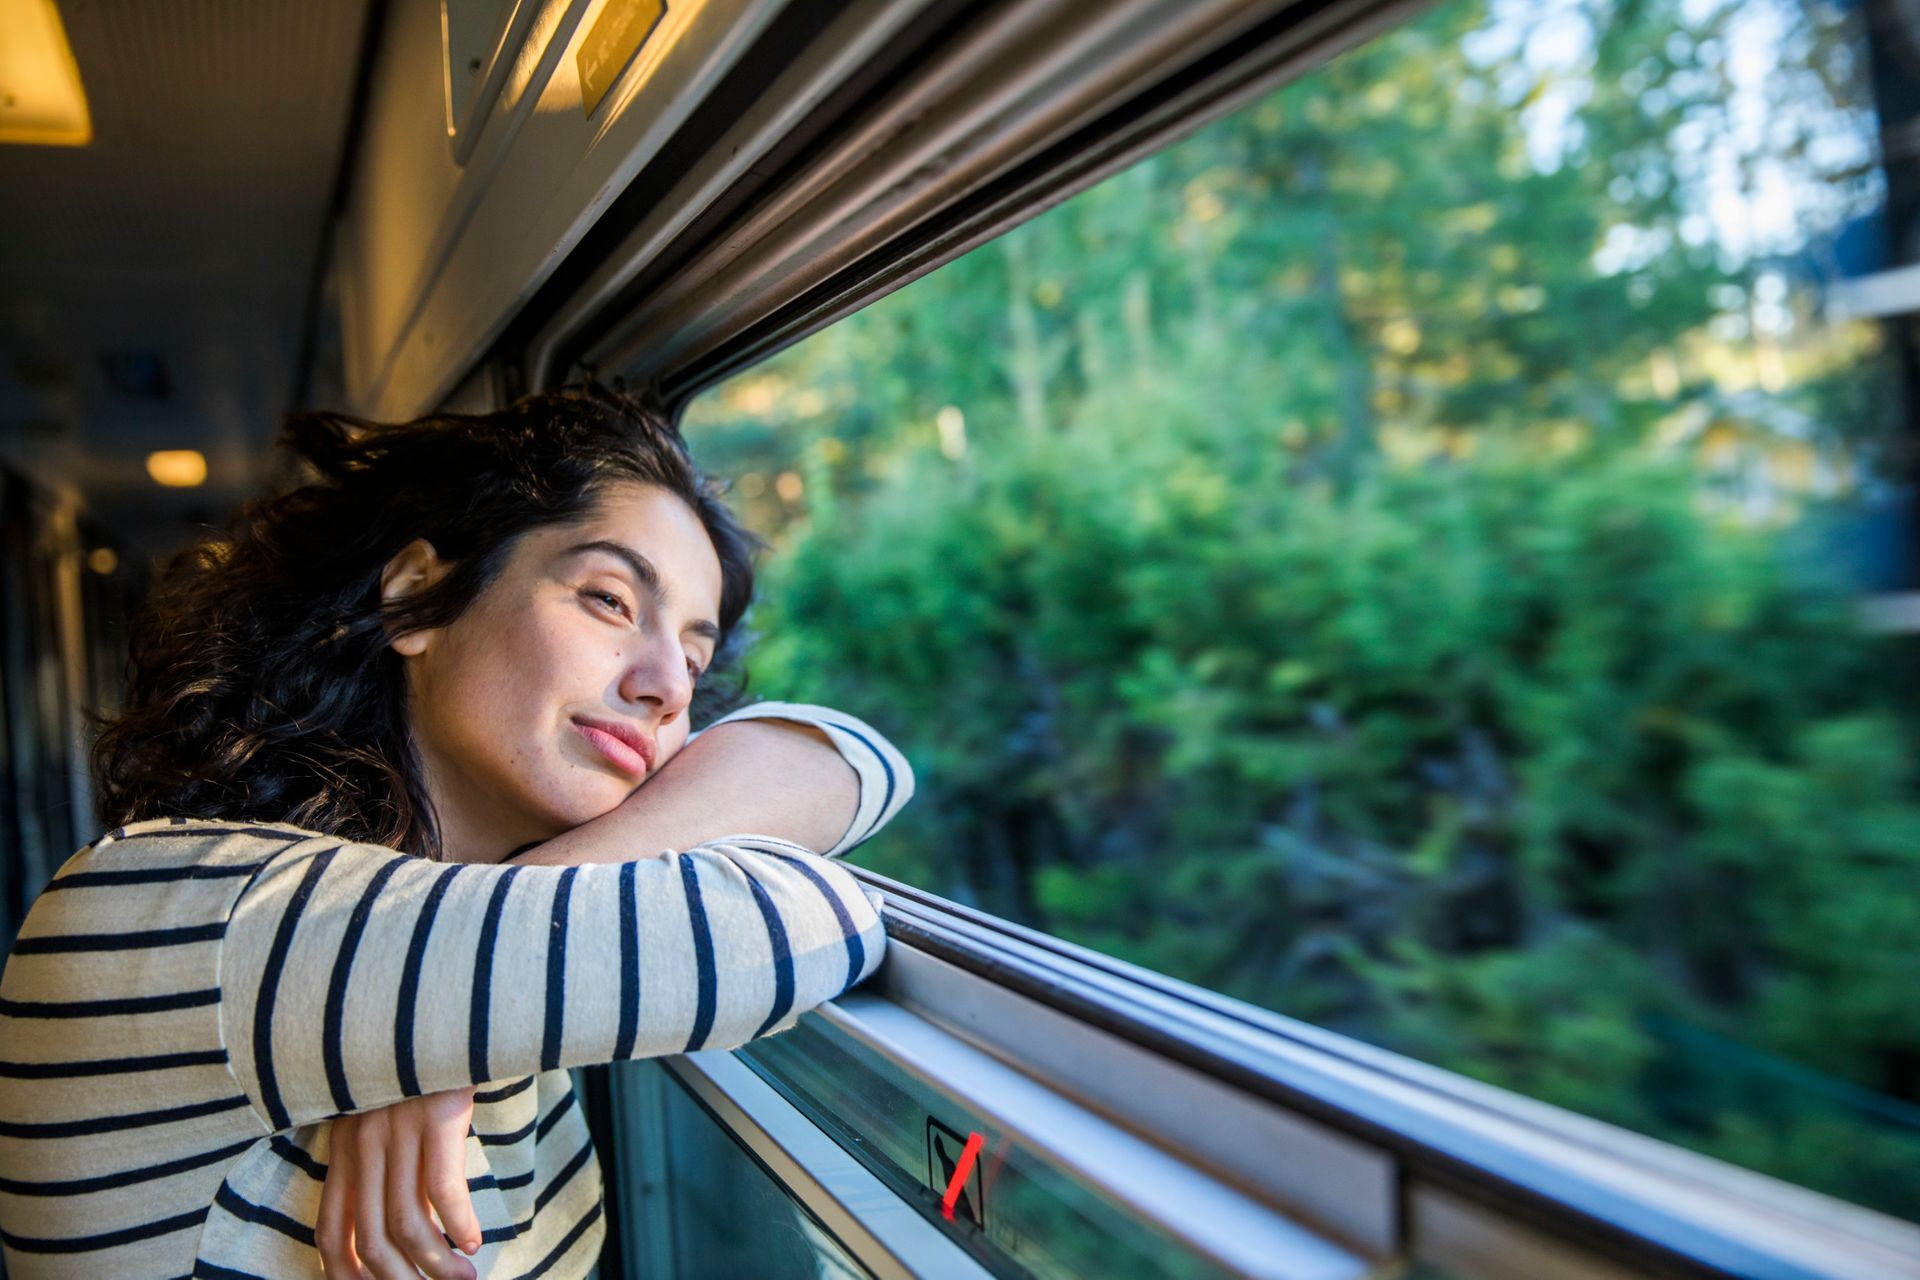 A dark-haired woman wearing a stripy top staring out of a train window.